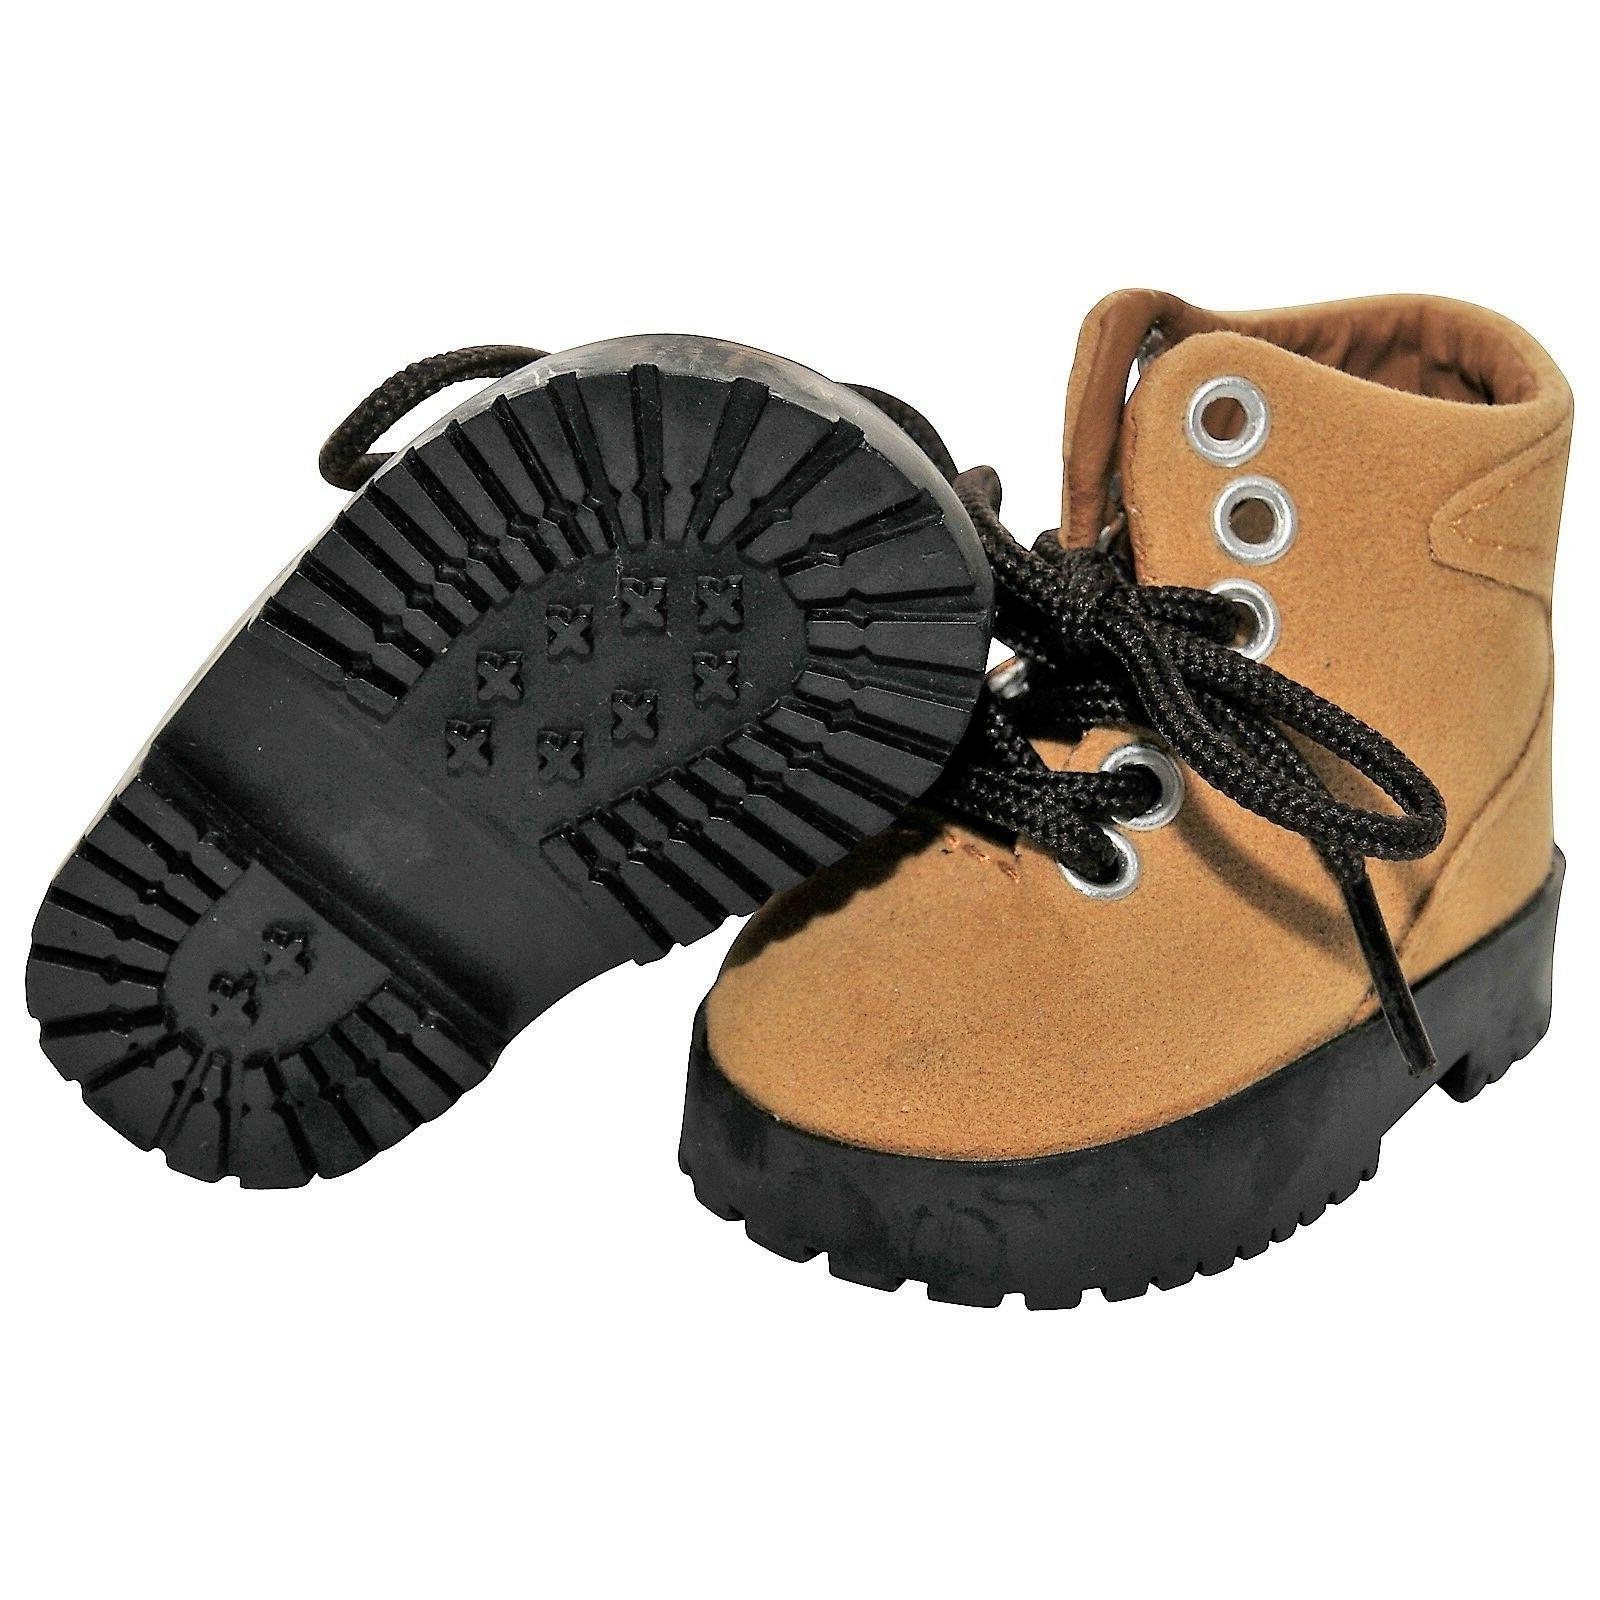 18 Inch Doll Clothes Accessory,Hiking Work Boots + Shoe Box